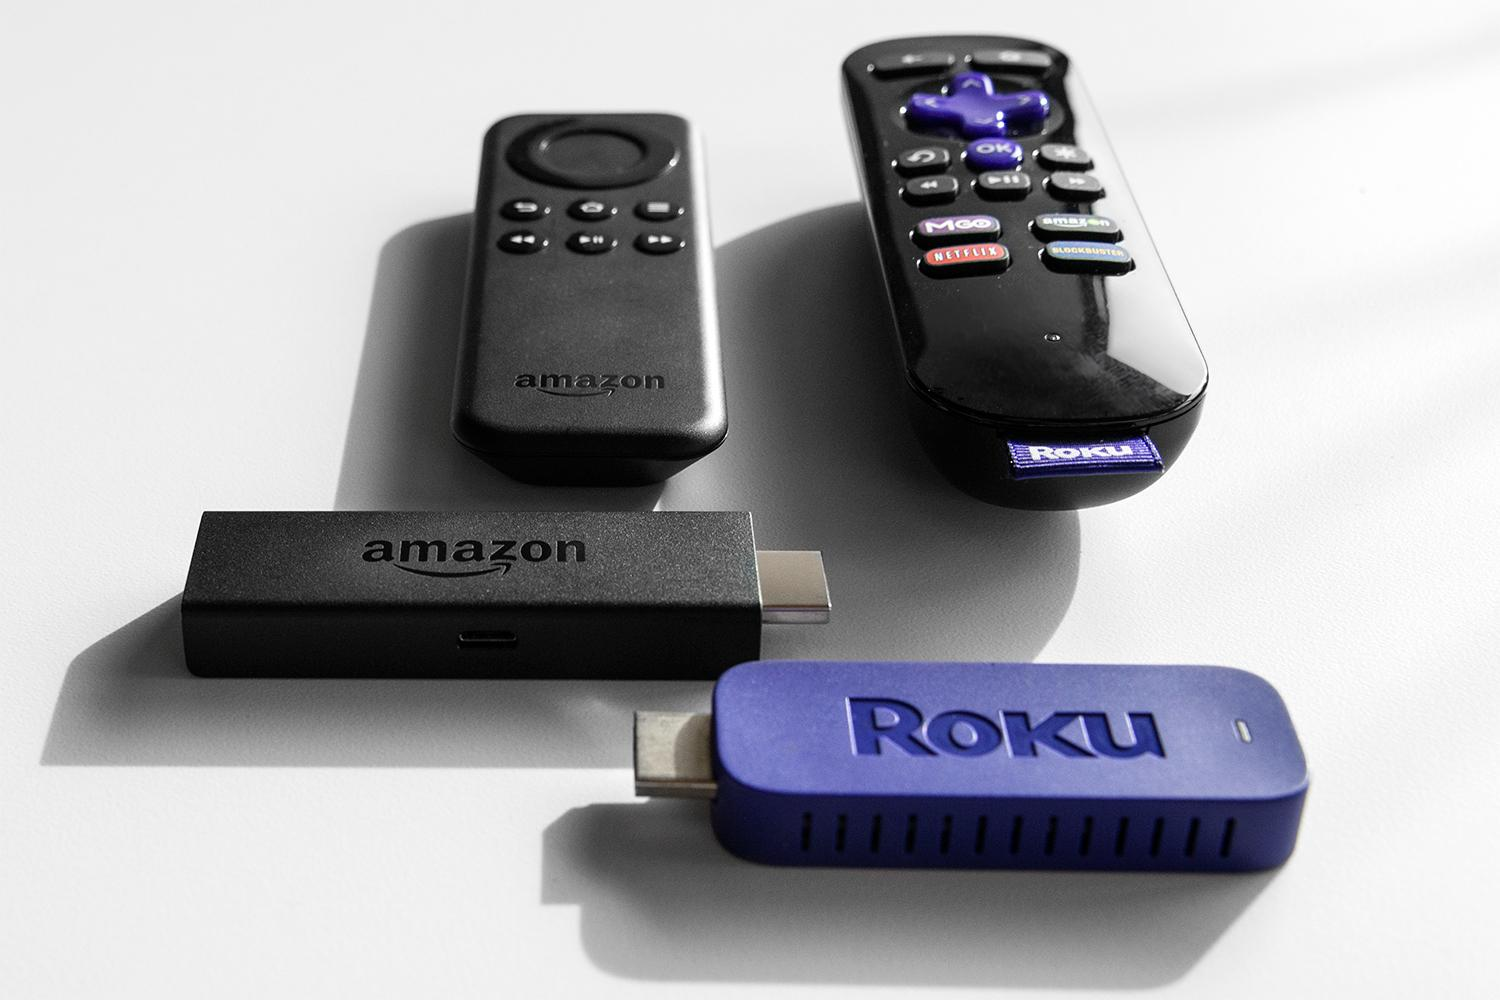 Amazon Fire Stick Vs Roku Stick